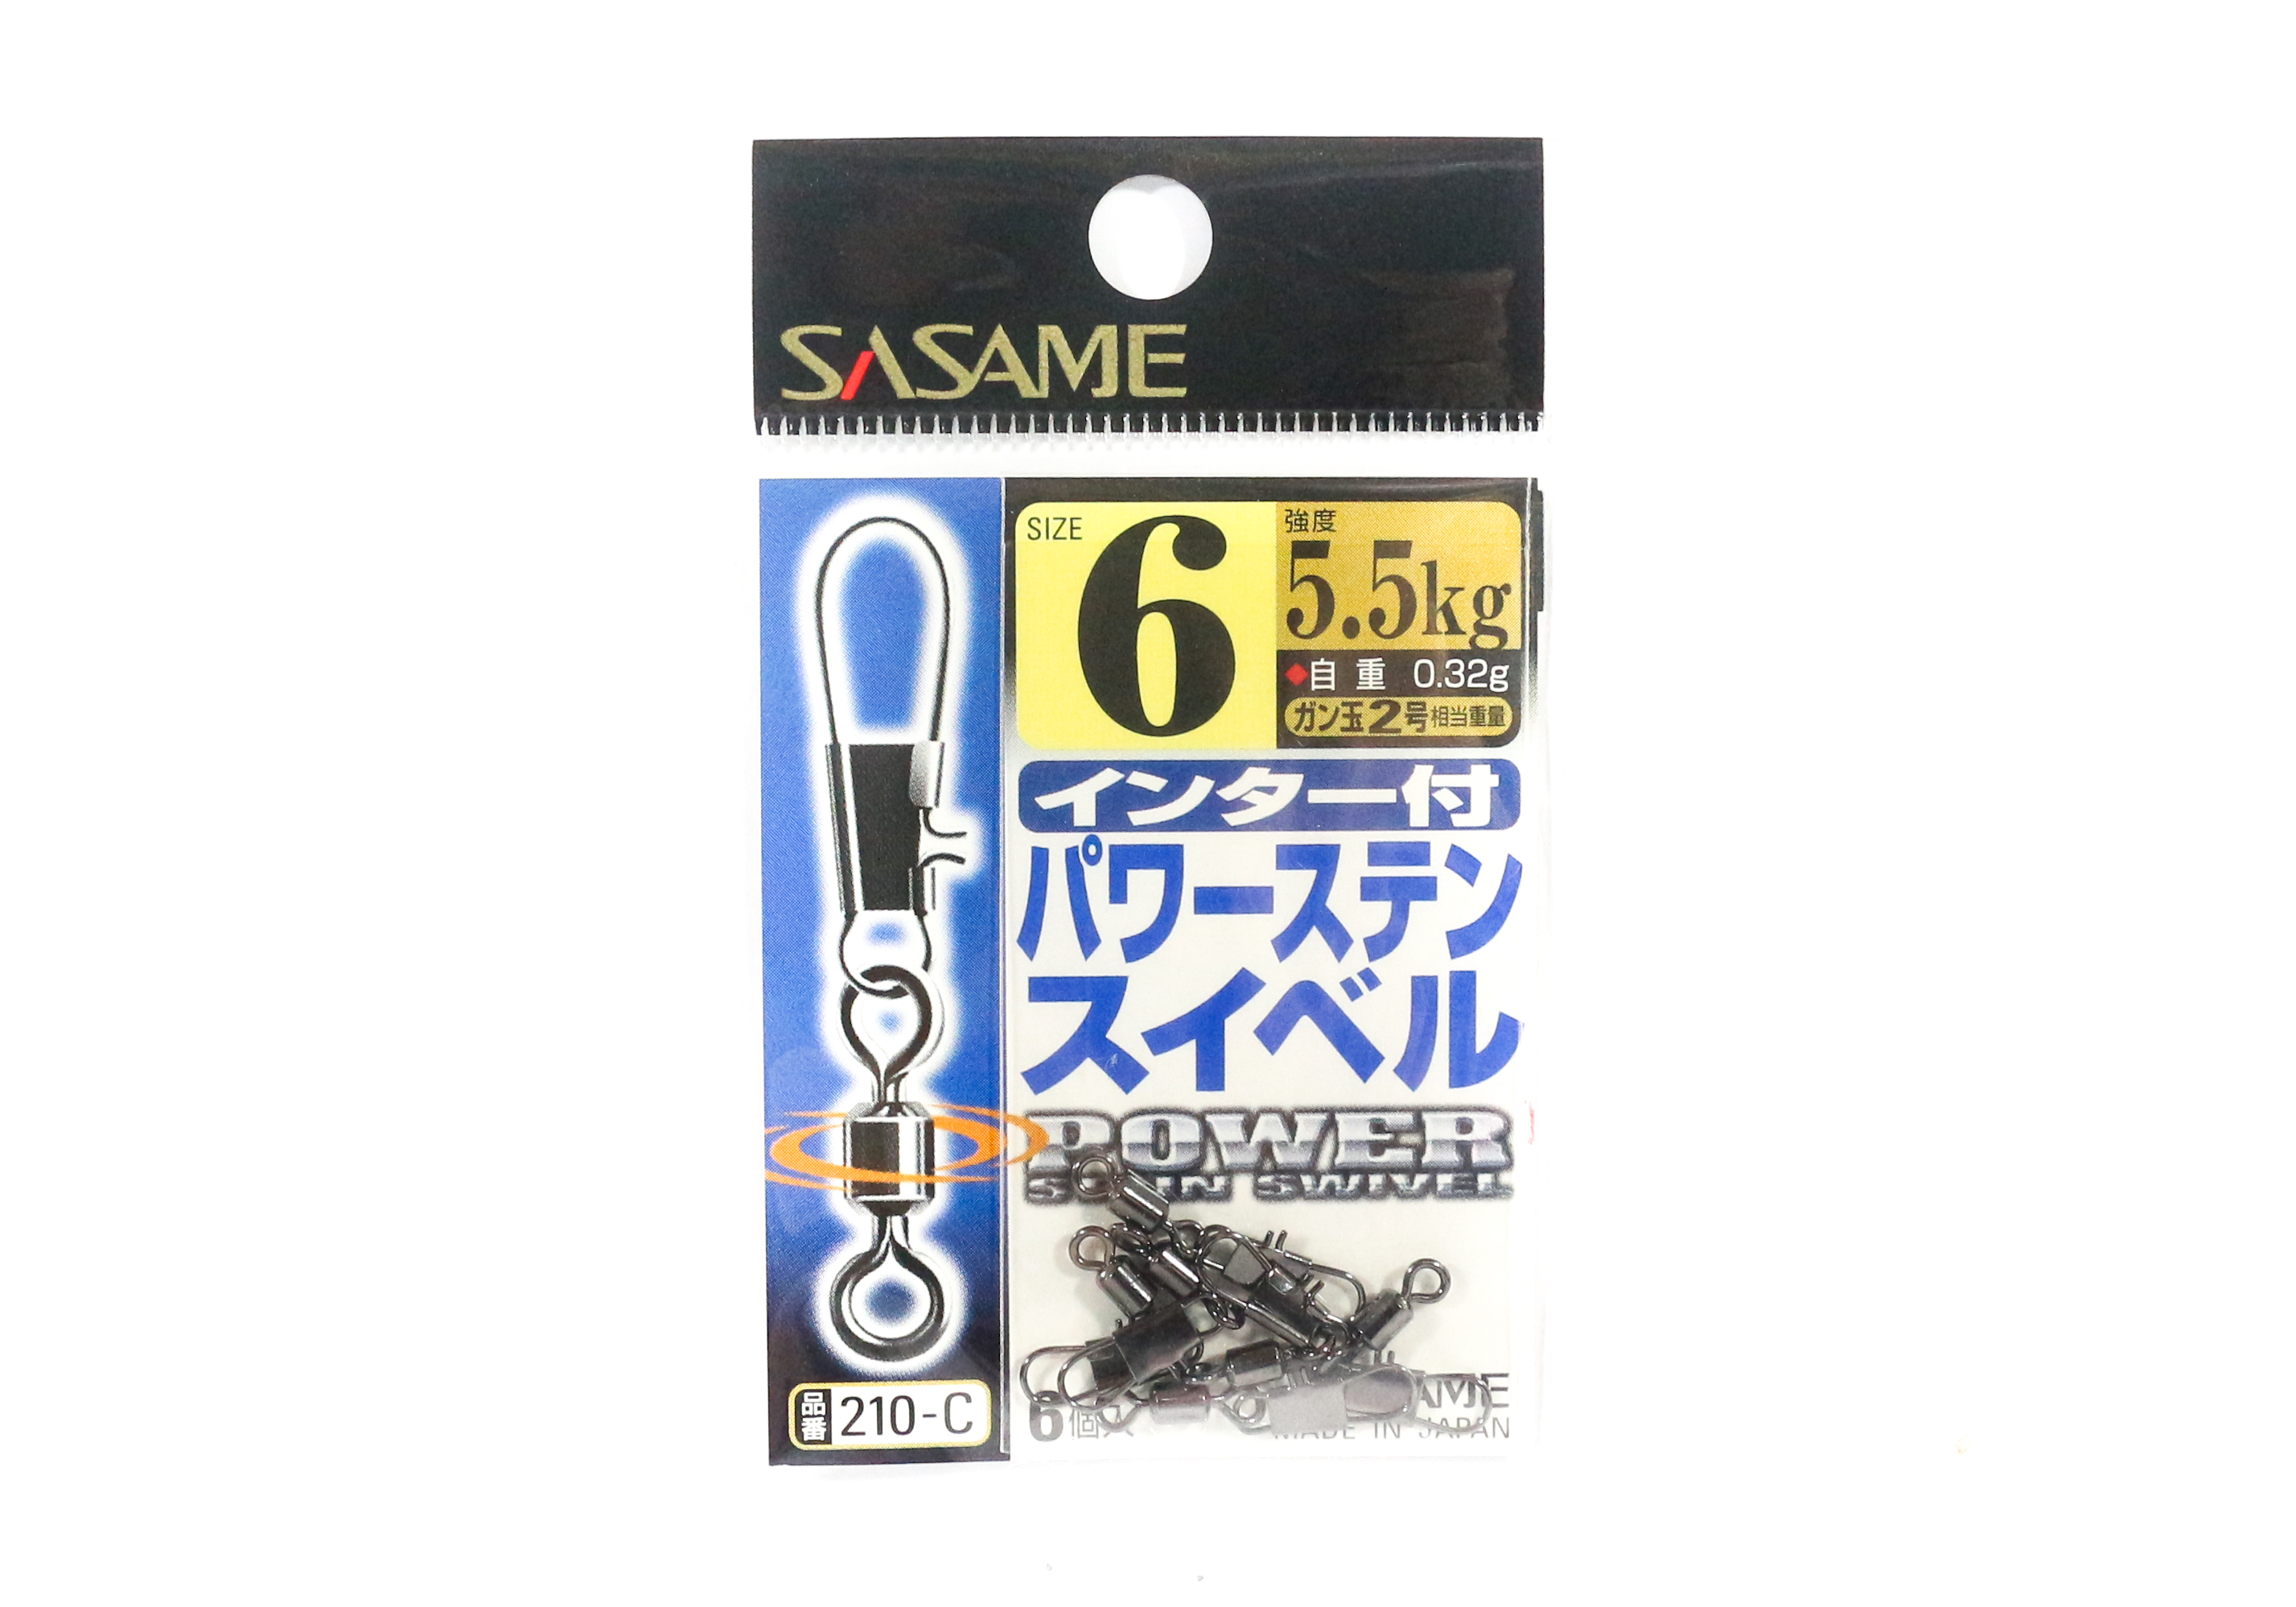 Sasame 210-C Power Stain Snap Swivel Smooth Spin Black Size 6 (1171)